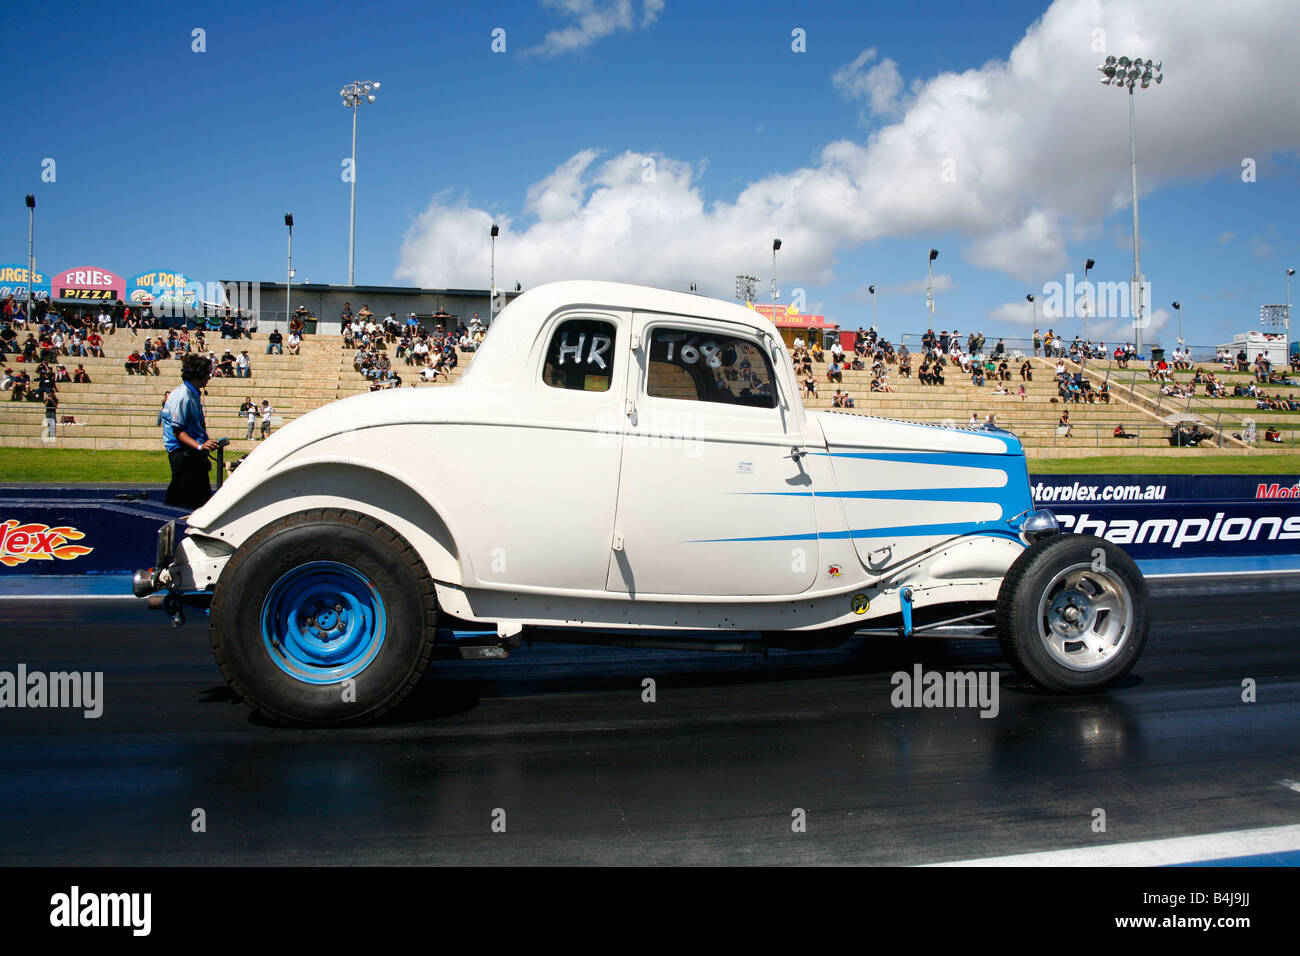 A hot rod car sitting on the start line at a drag race motorsport event - Stock Image